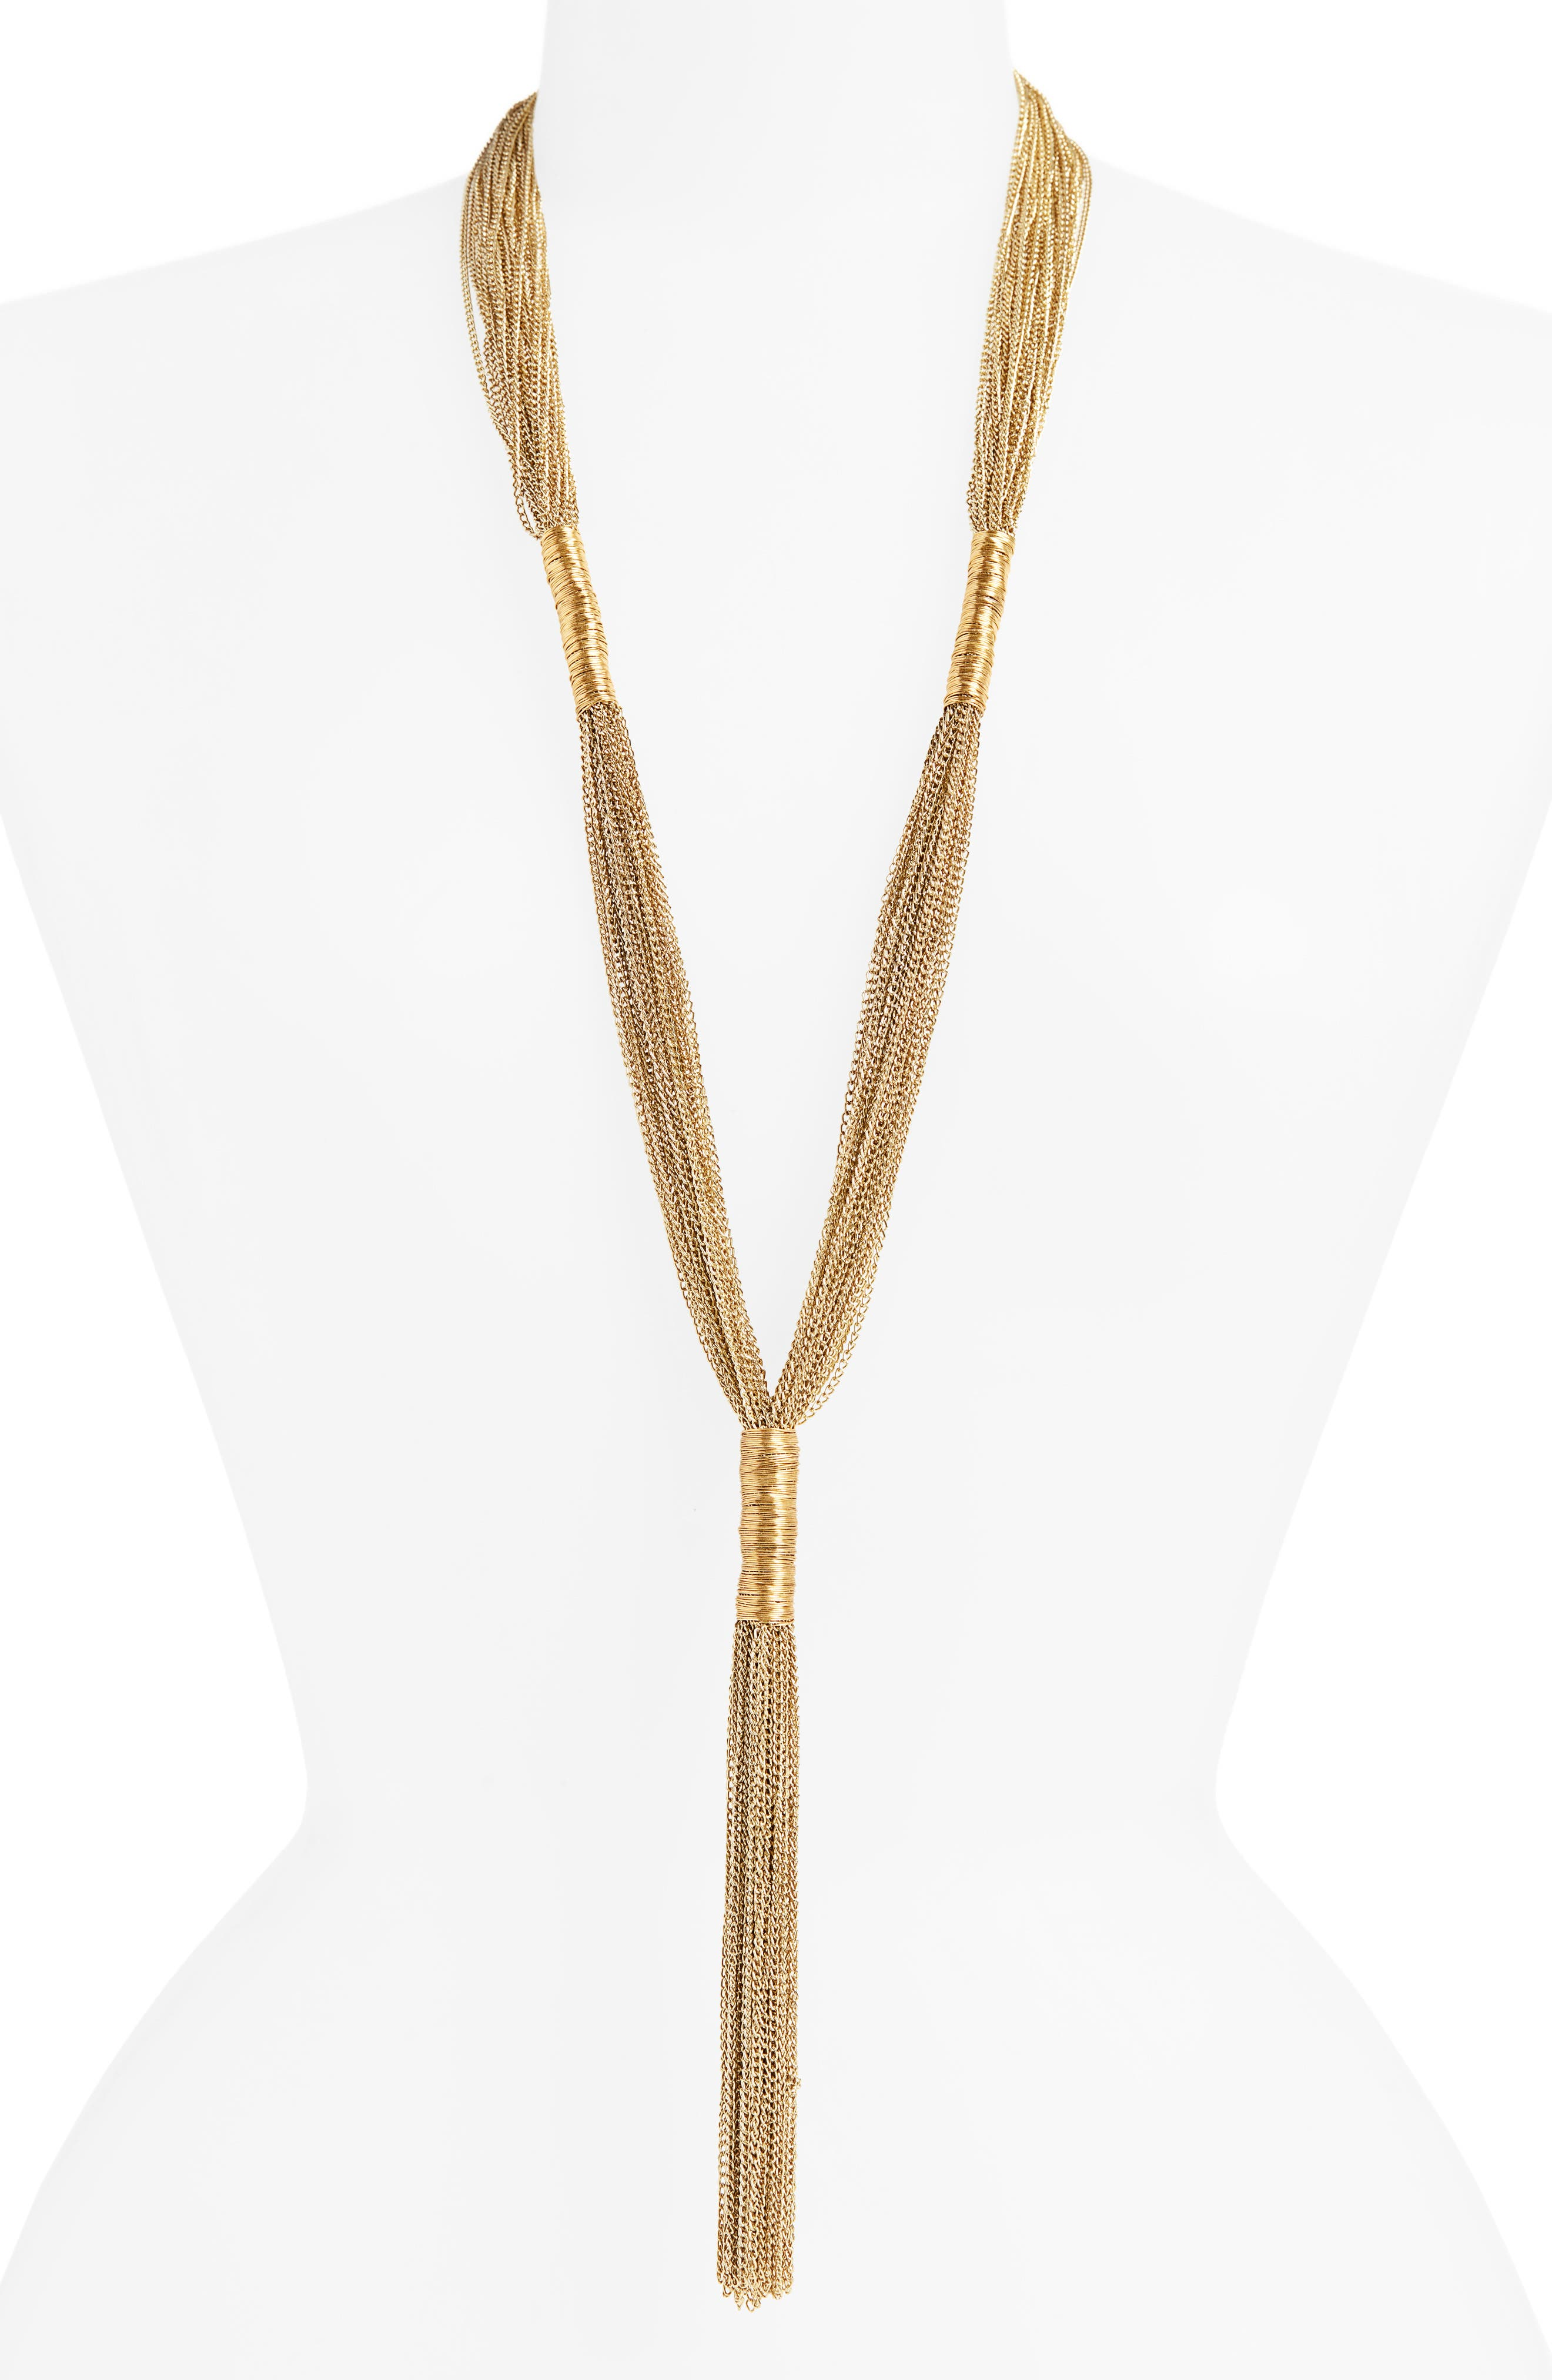 Normandie Multistrand Y-Necklace,                             Main thumbnail 1, color,                             GOLD